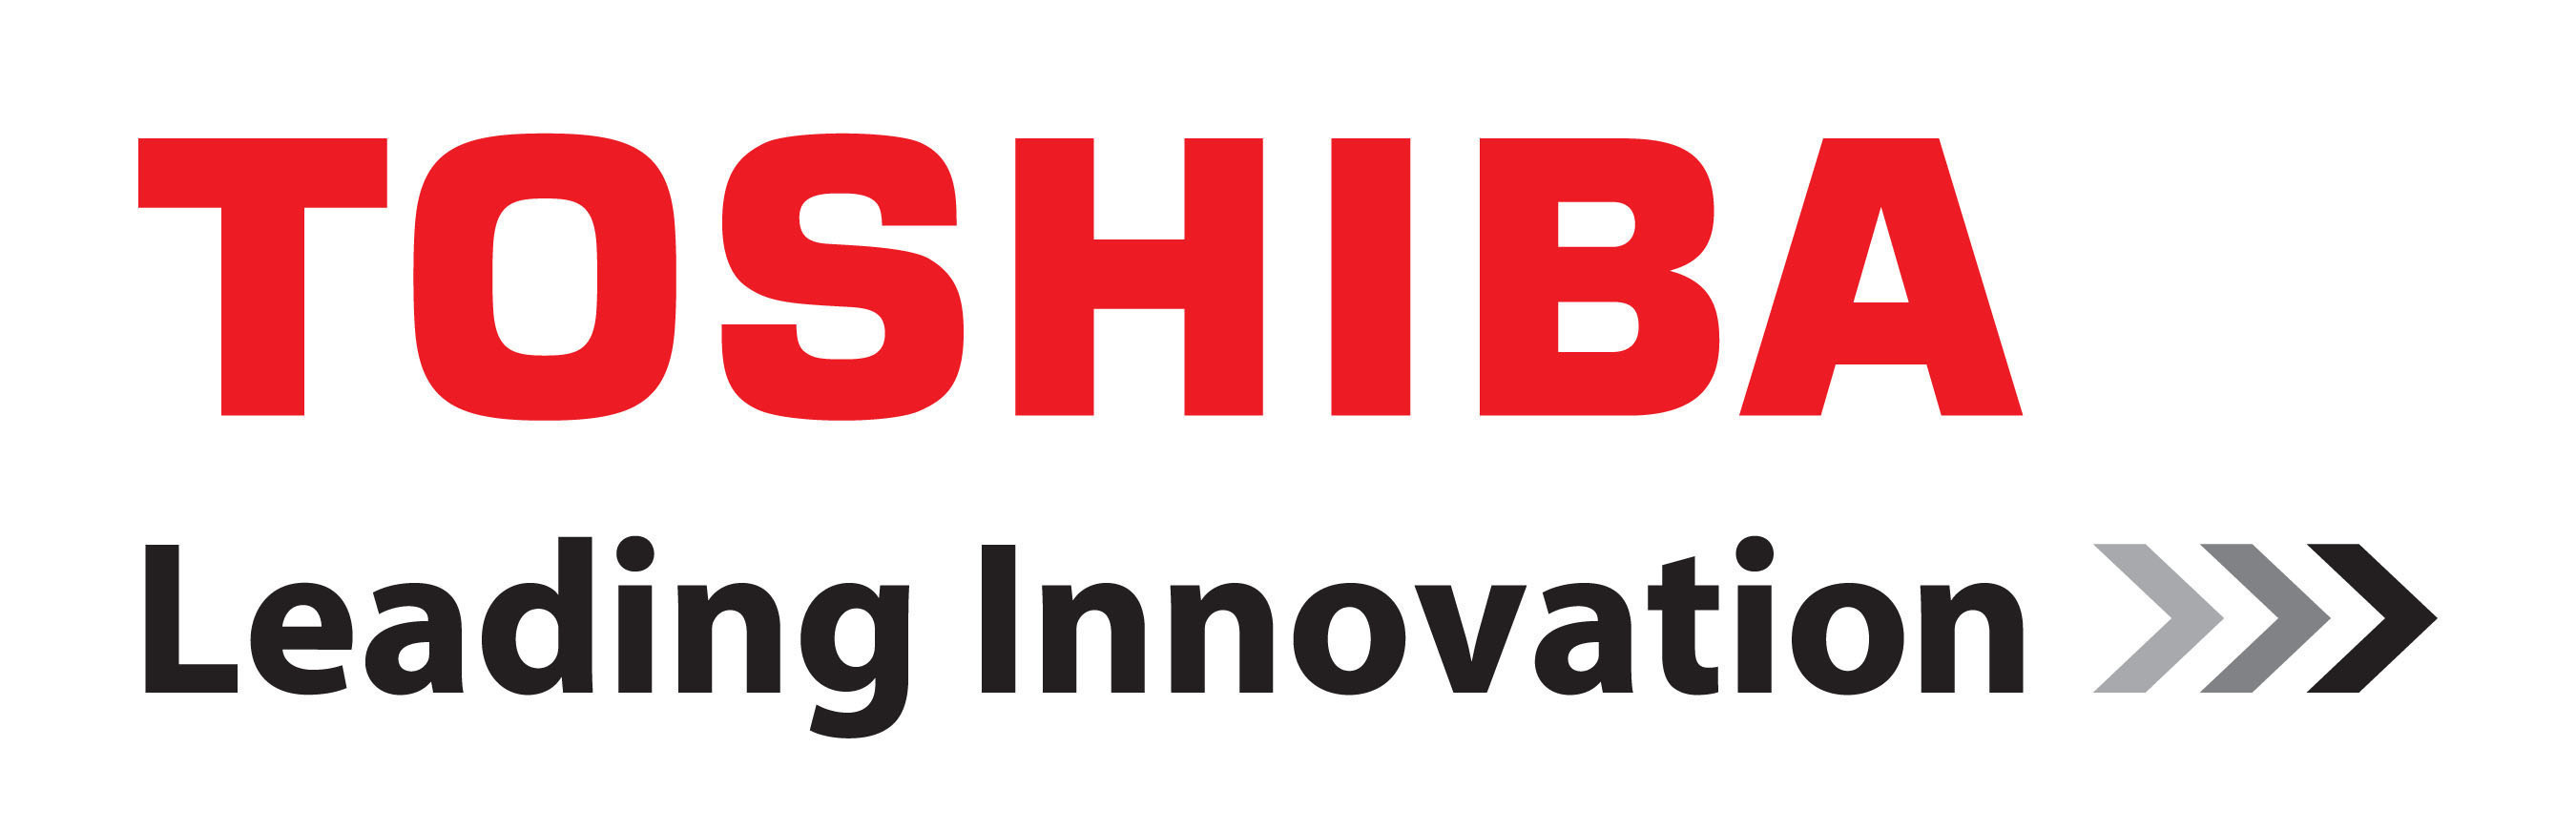 Toshiba VIPedge Application Service Wins 2015 Cloud Computing Product of the Year Award